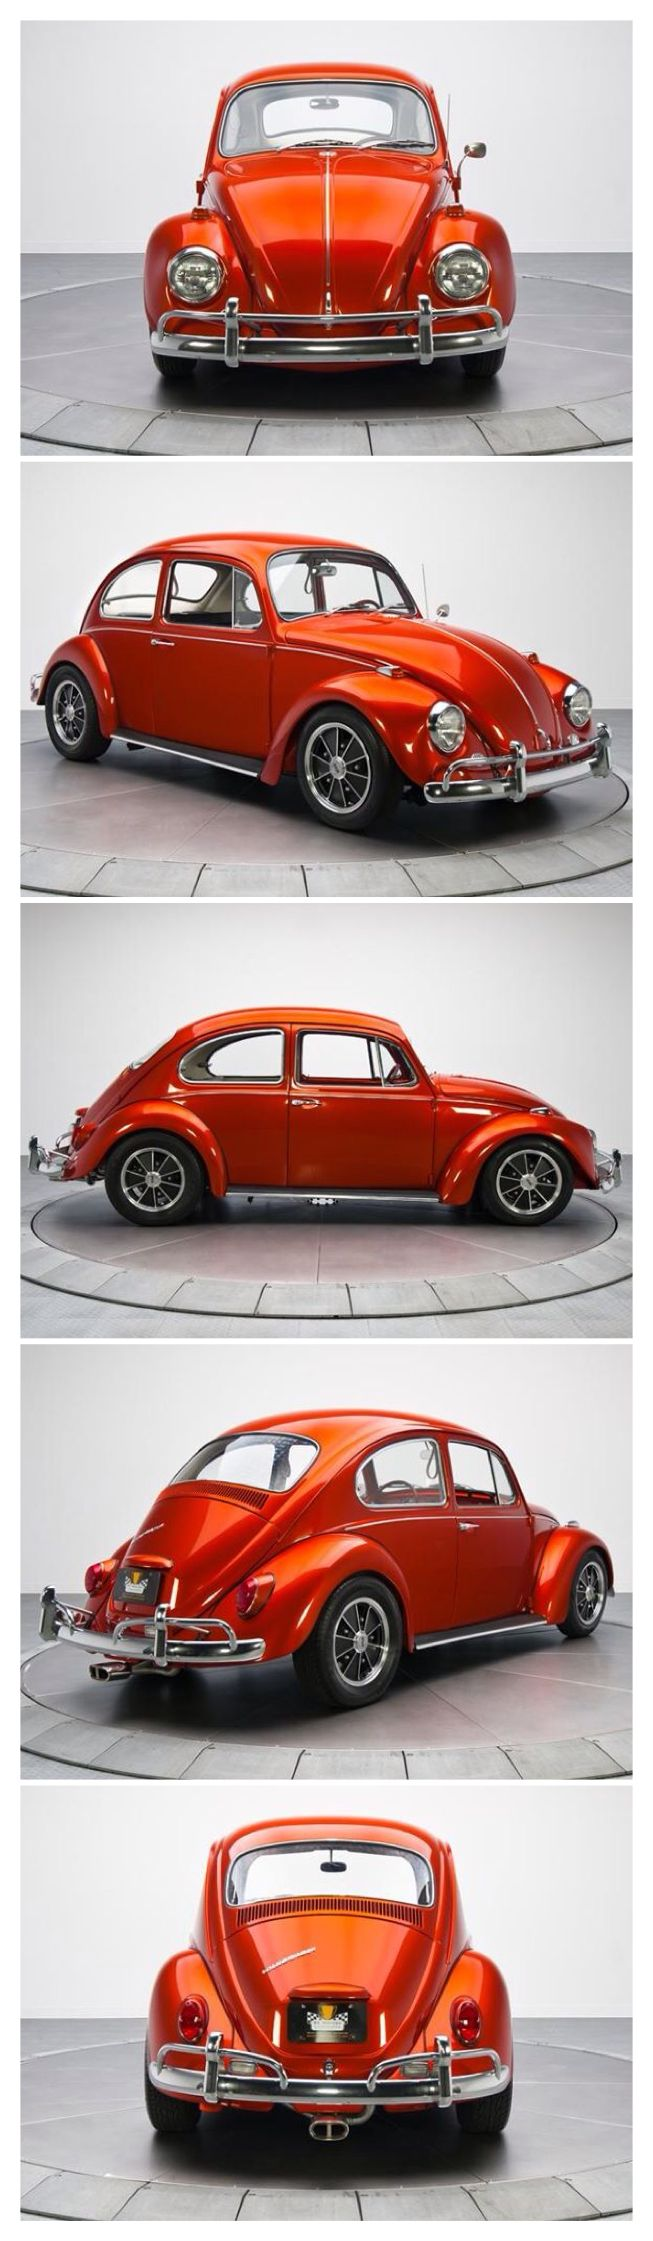 1967 VW Beetle...Brought to you by #House of #Insurance in #eugeneoregon